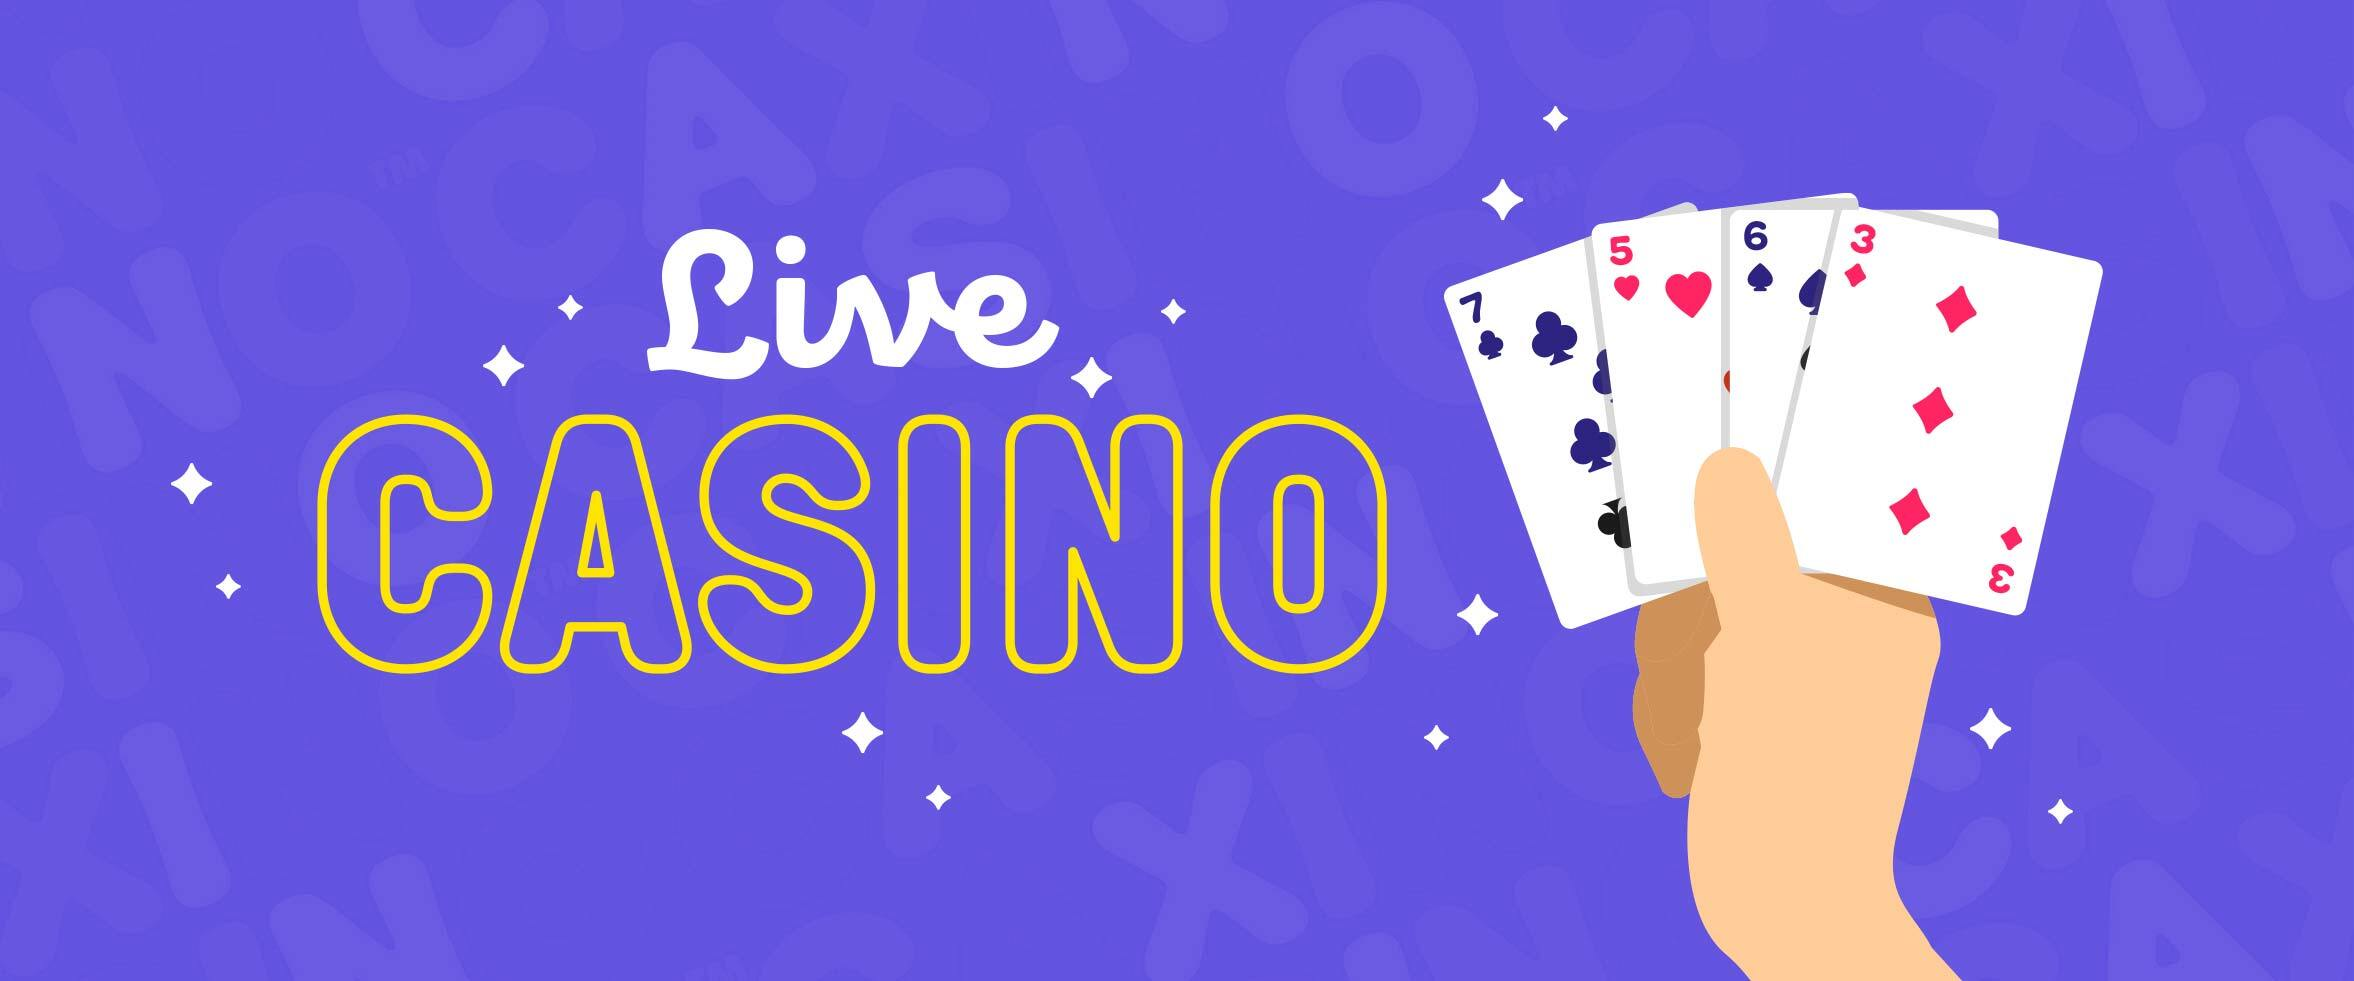 Check out Caxino's Live Casino